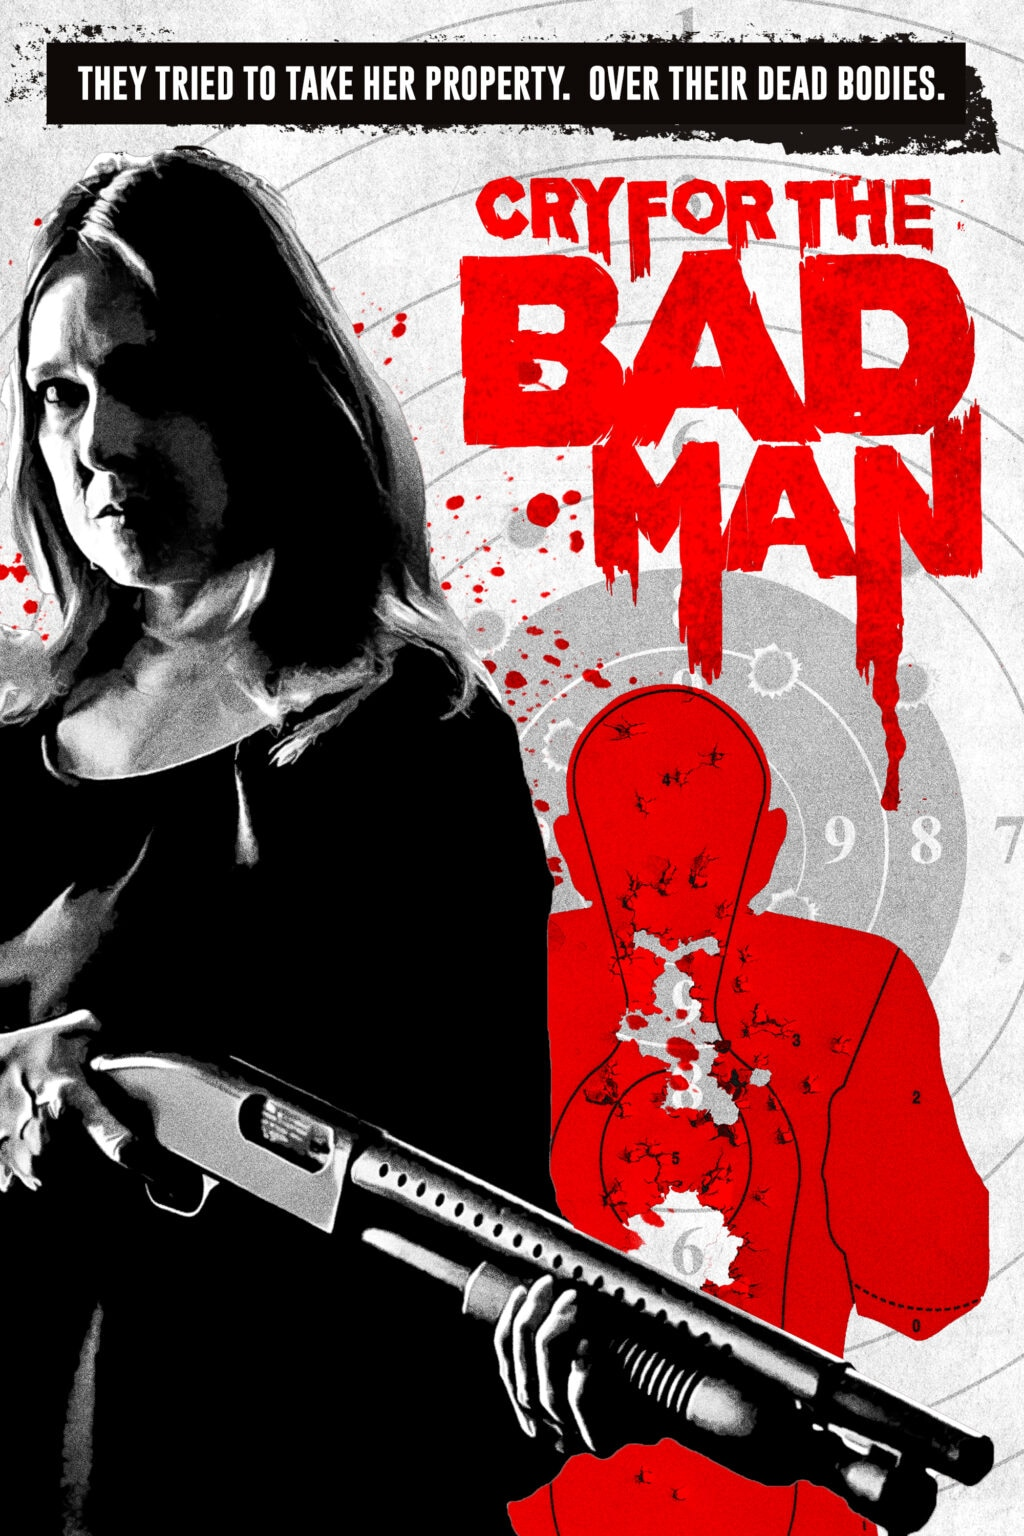 CryForTheBadMan KeyArt 2x3 2000x3000 1024x1536 - Trailer: I SPIT ON YOUR GRAVE's Camille Keaton in Revenge Horror CRY FOR THE BAD MAN